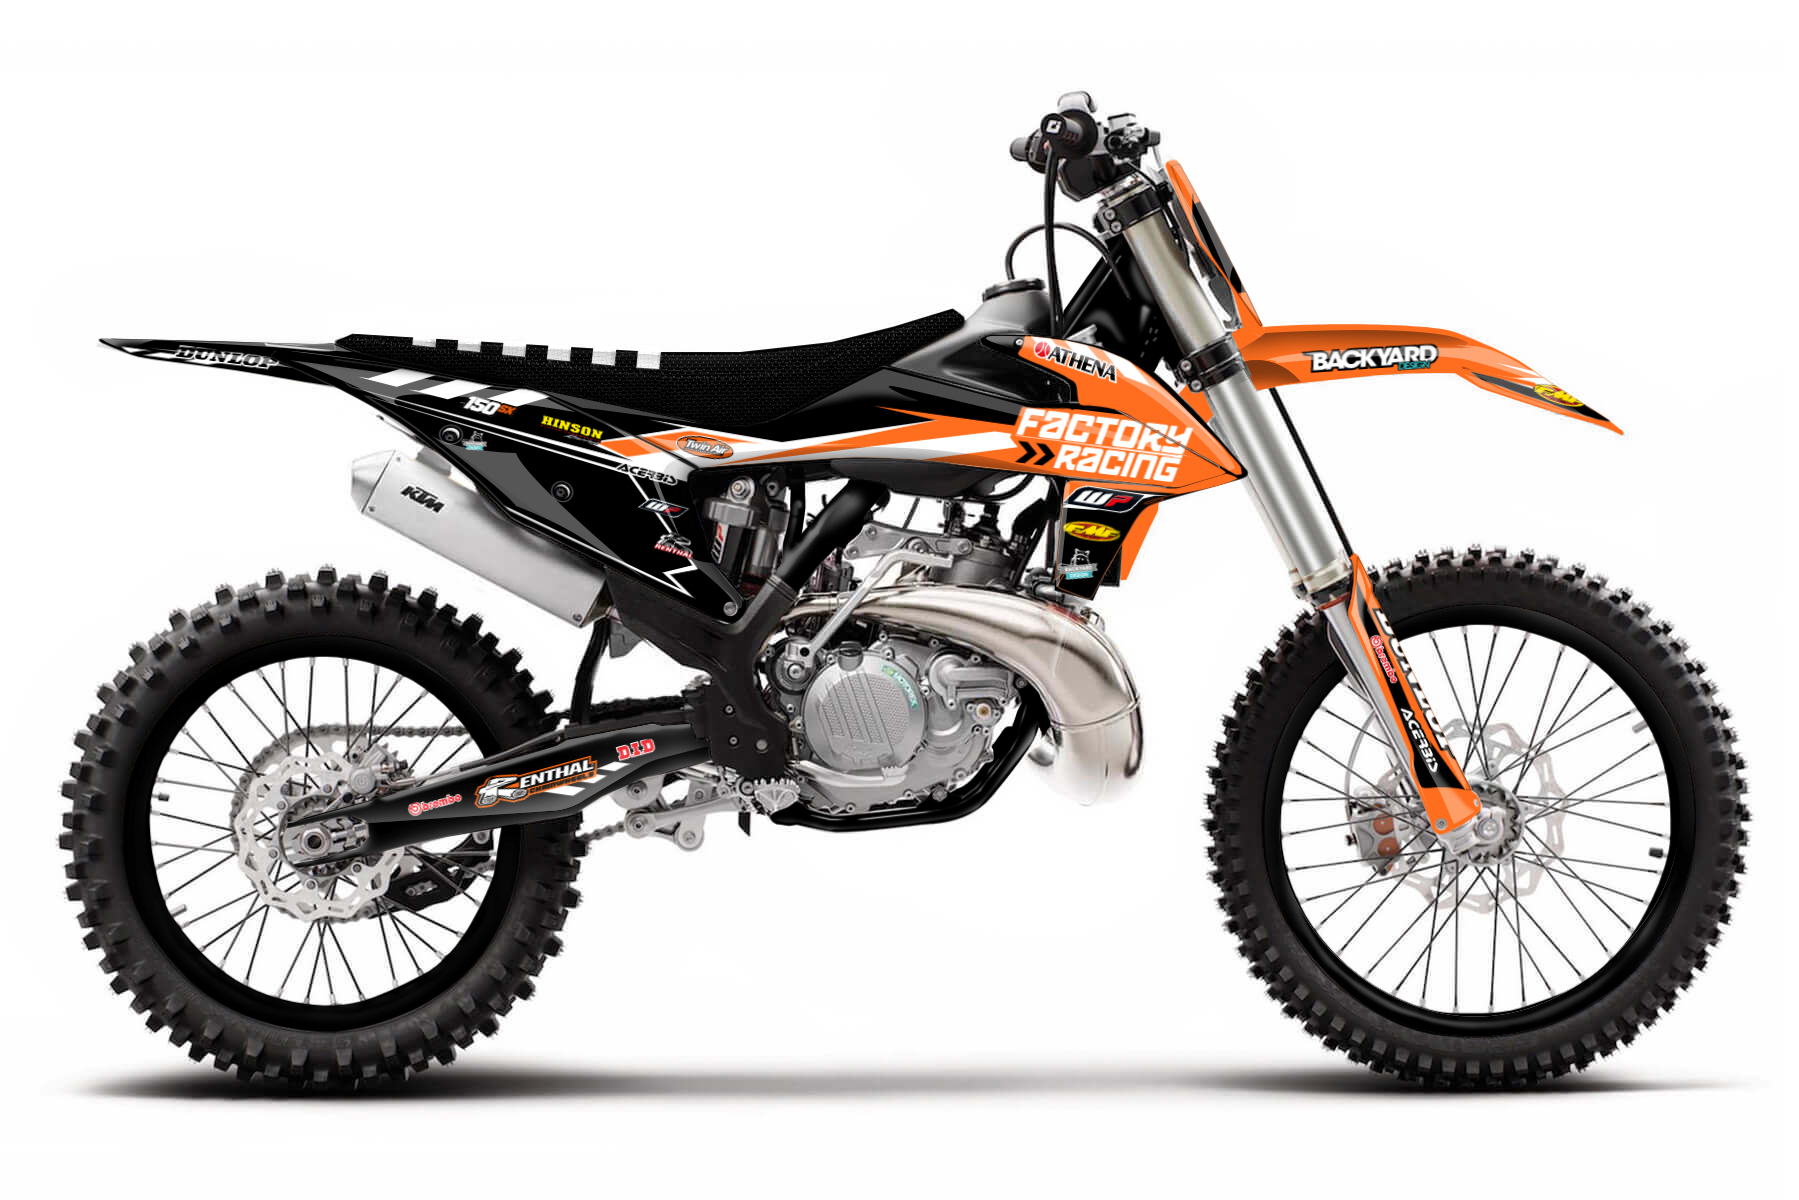 KTM SX 150 MX Graphic Kits  Unbeaten in its own class, the KTM SX 150 delivers an easy handling and a lightweight chassis that makes the four stroke both sturdy and reliable.